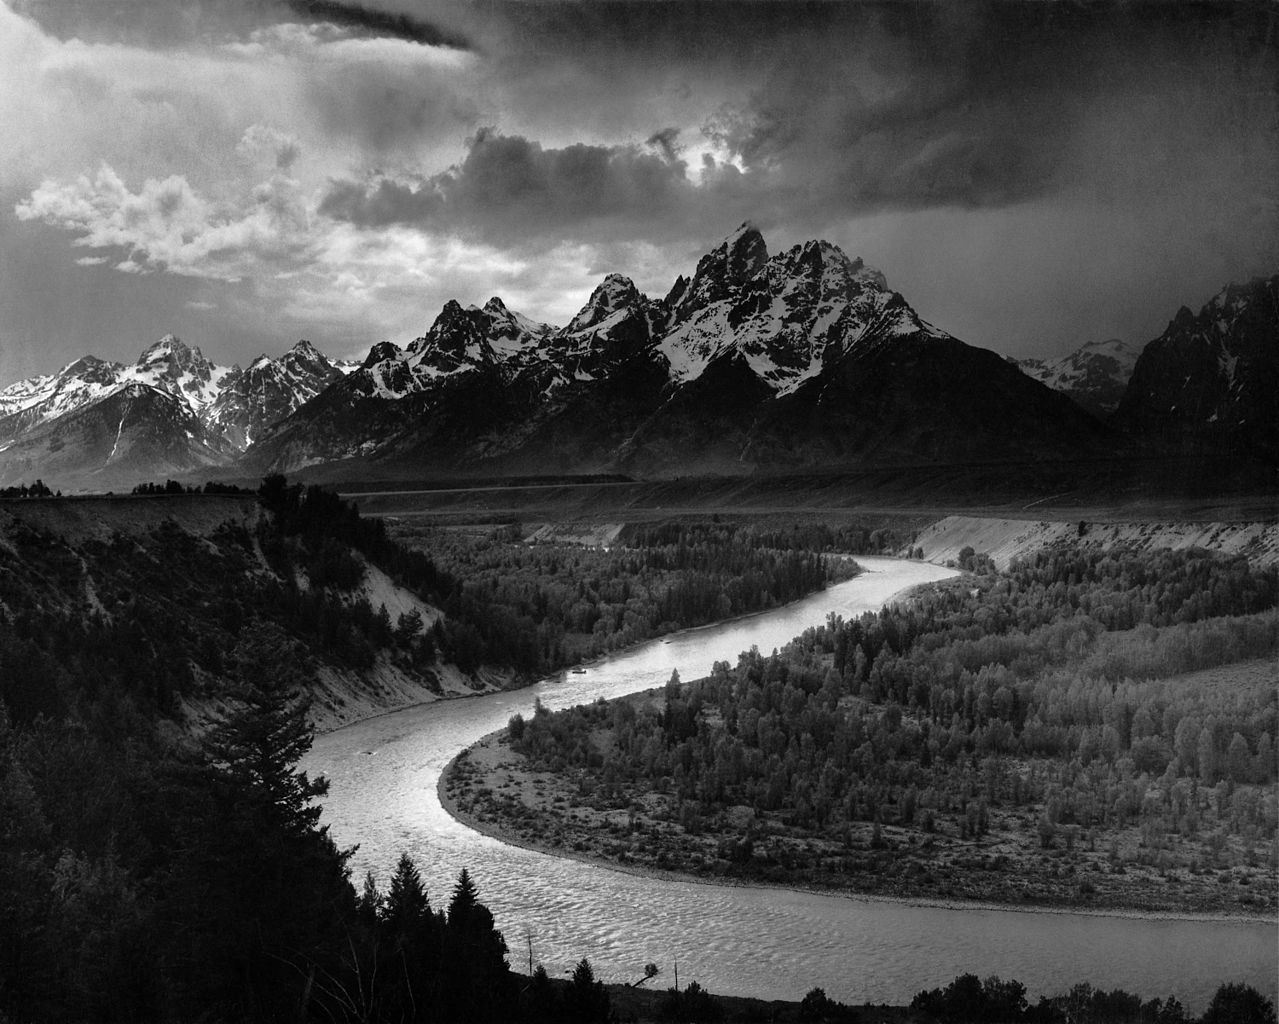 Tetons and the Snake River by Ansel Adams, 1942. This image is now traveling through deep space aboard Voyager 1.